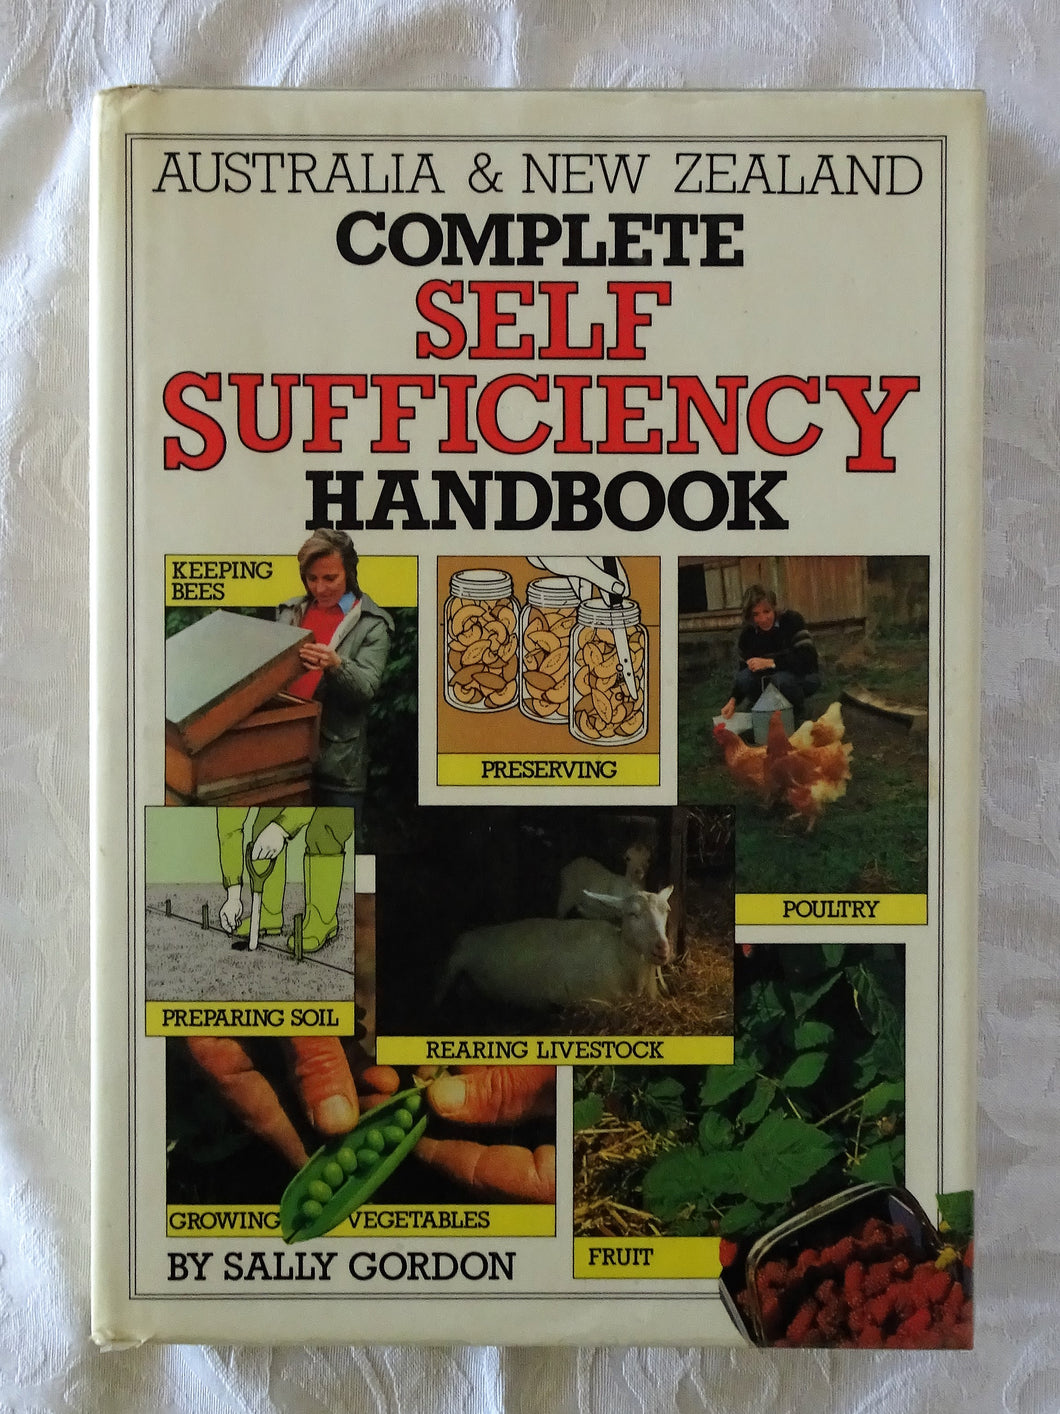 Complete Self Sufficiency Handbook by Sally Gordon